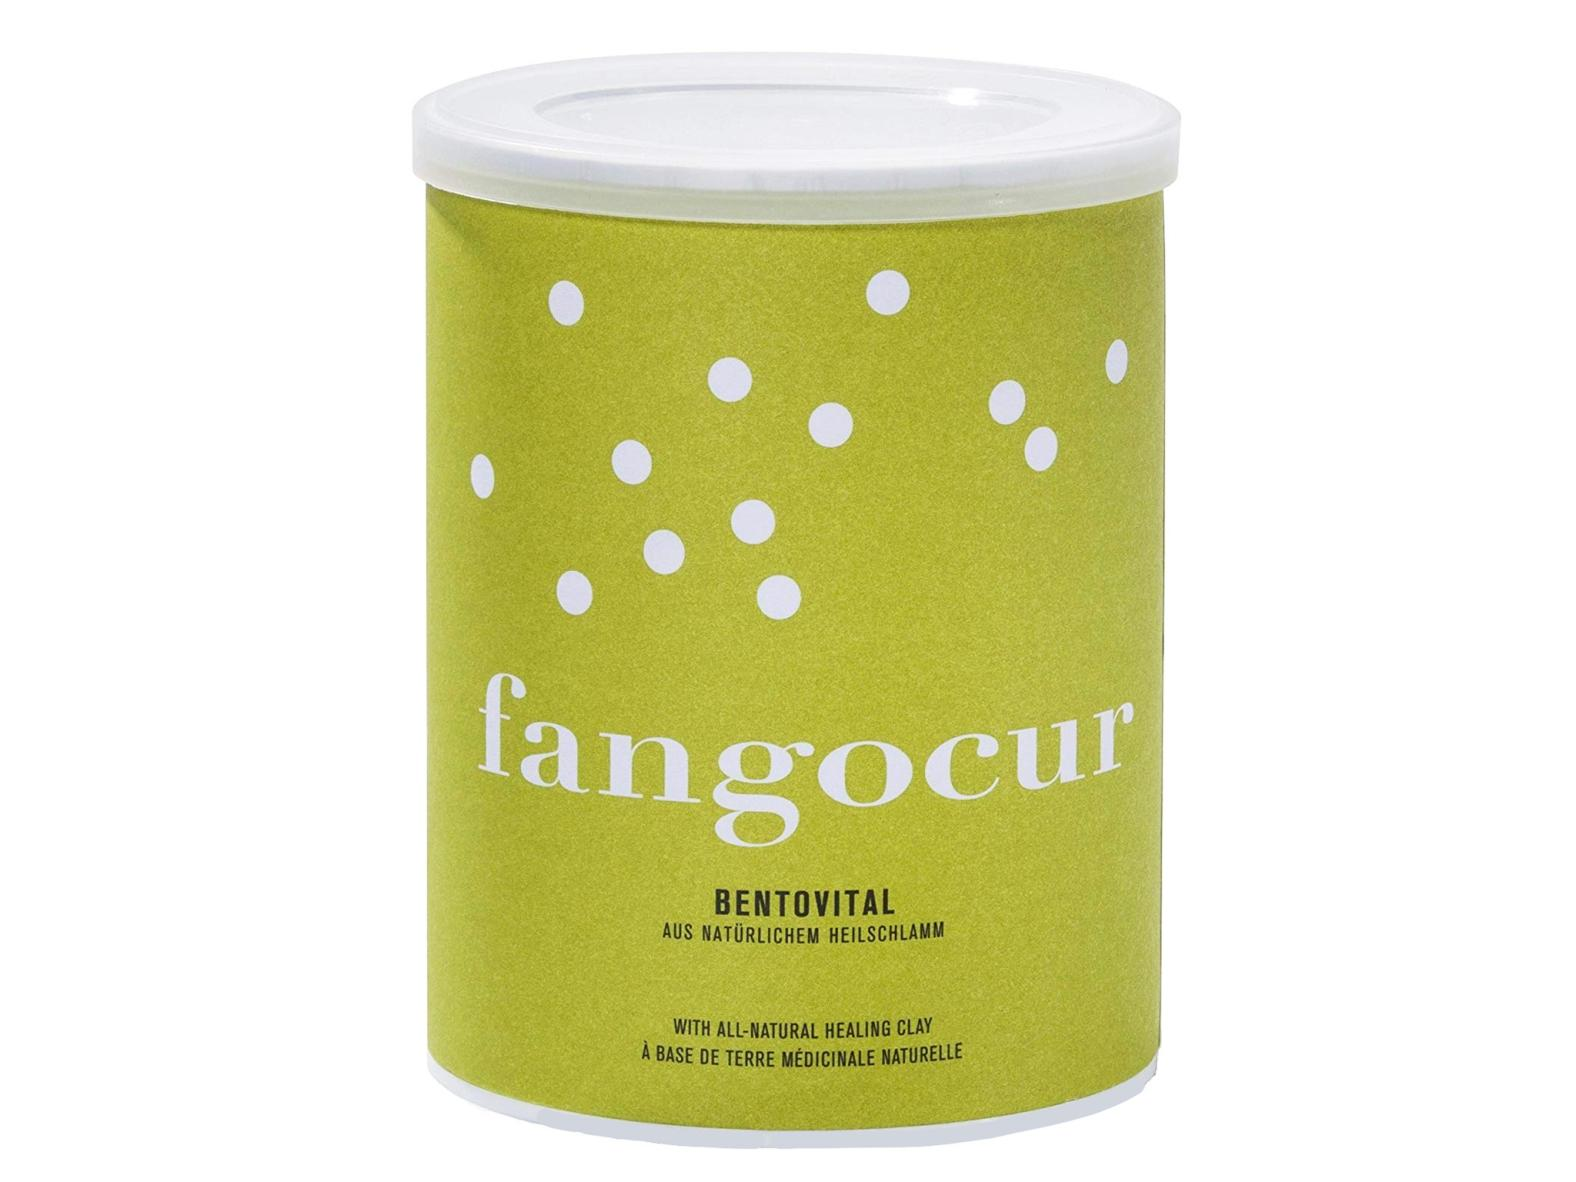 Fangocur Bentovital (300 ml)